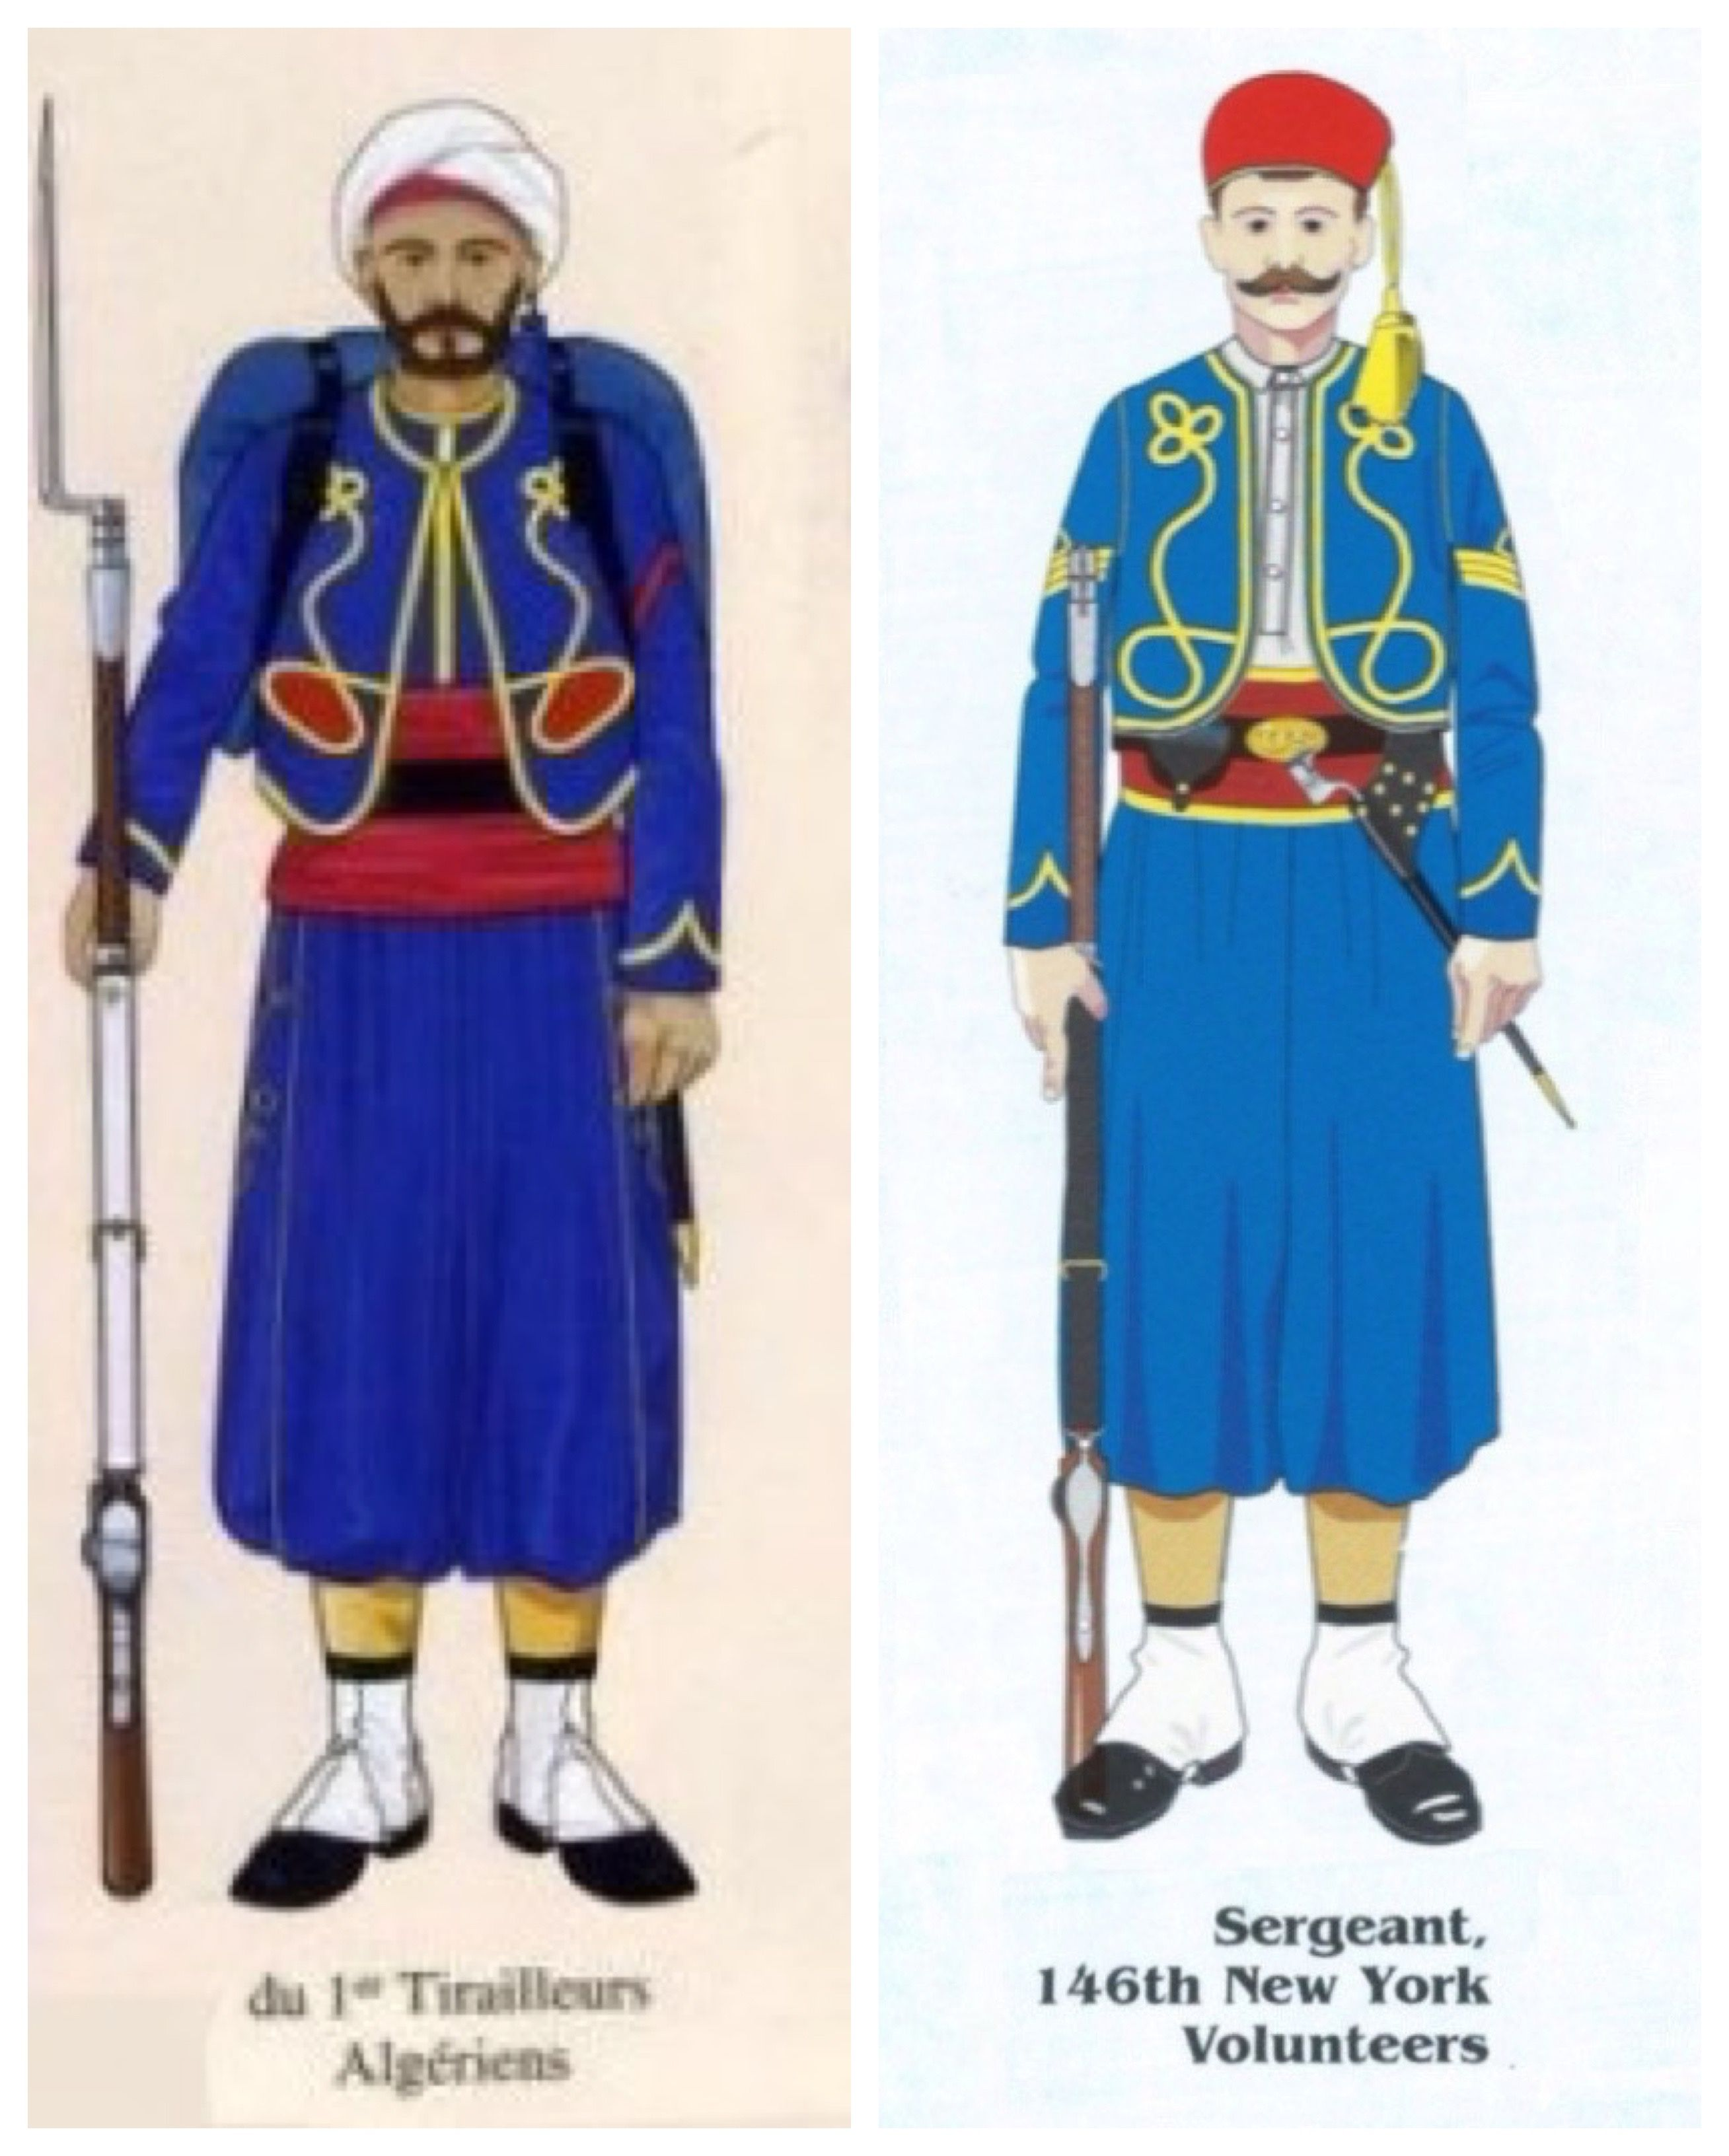 Comparing The Uniform Of The American Civil War Zouaves Uniform This Time With The French